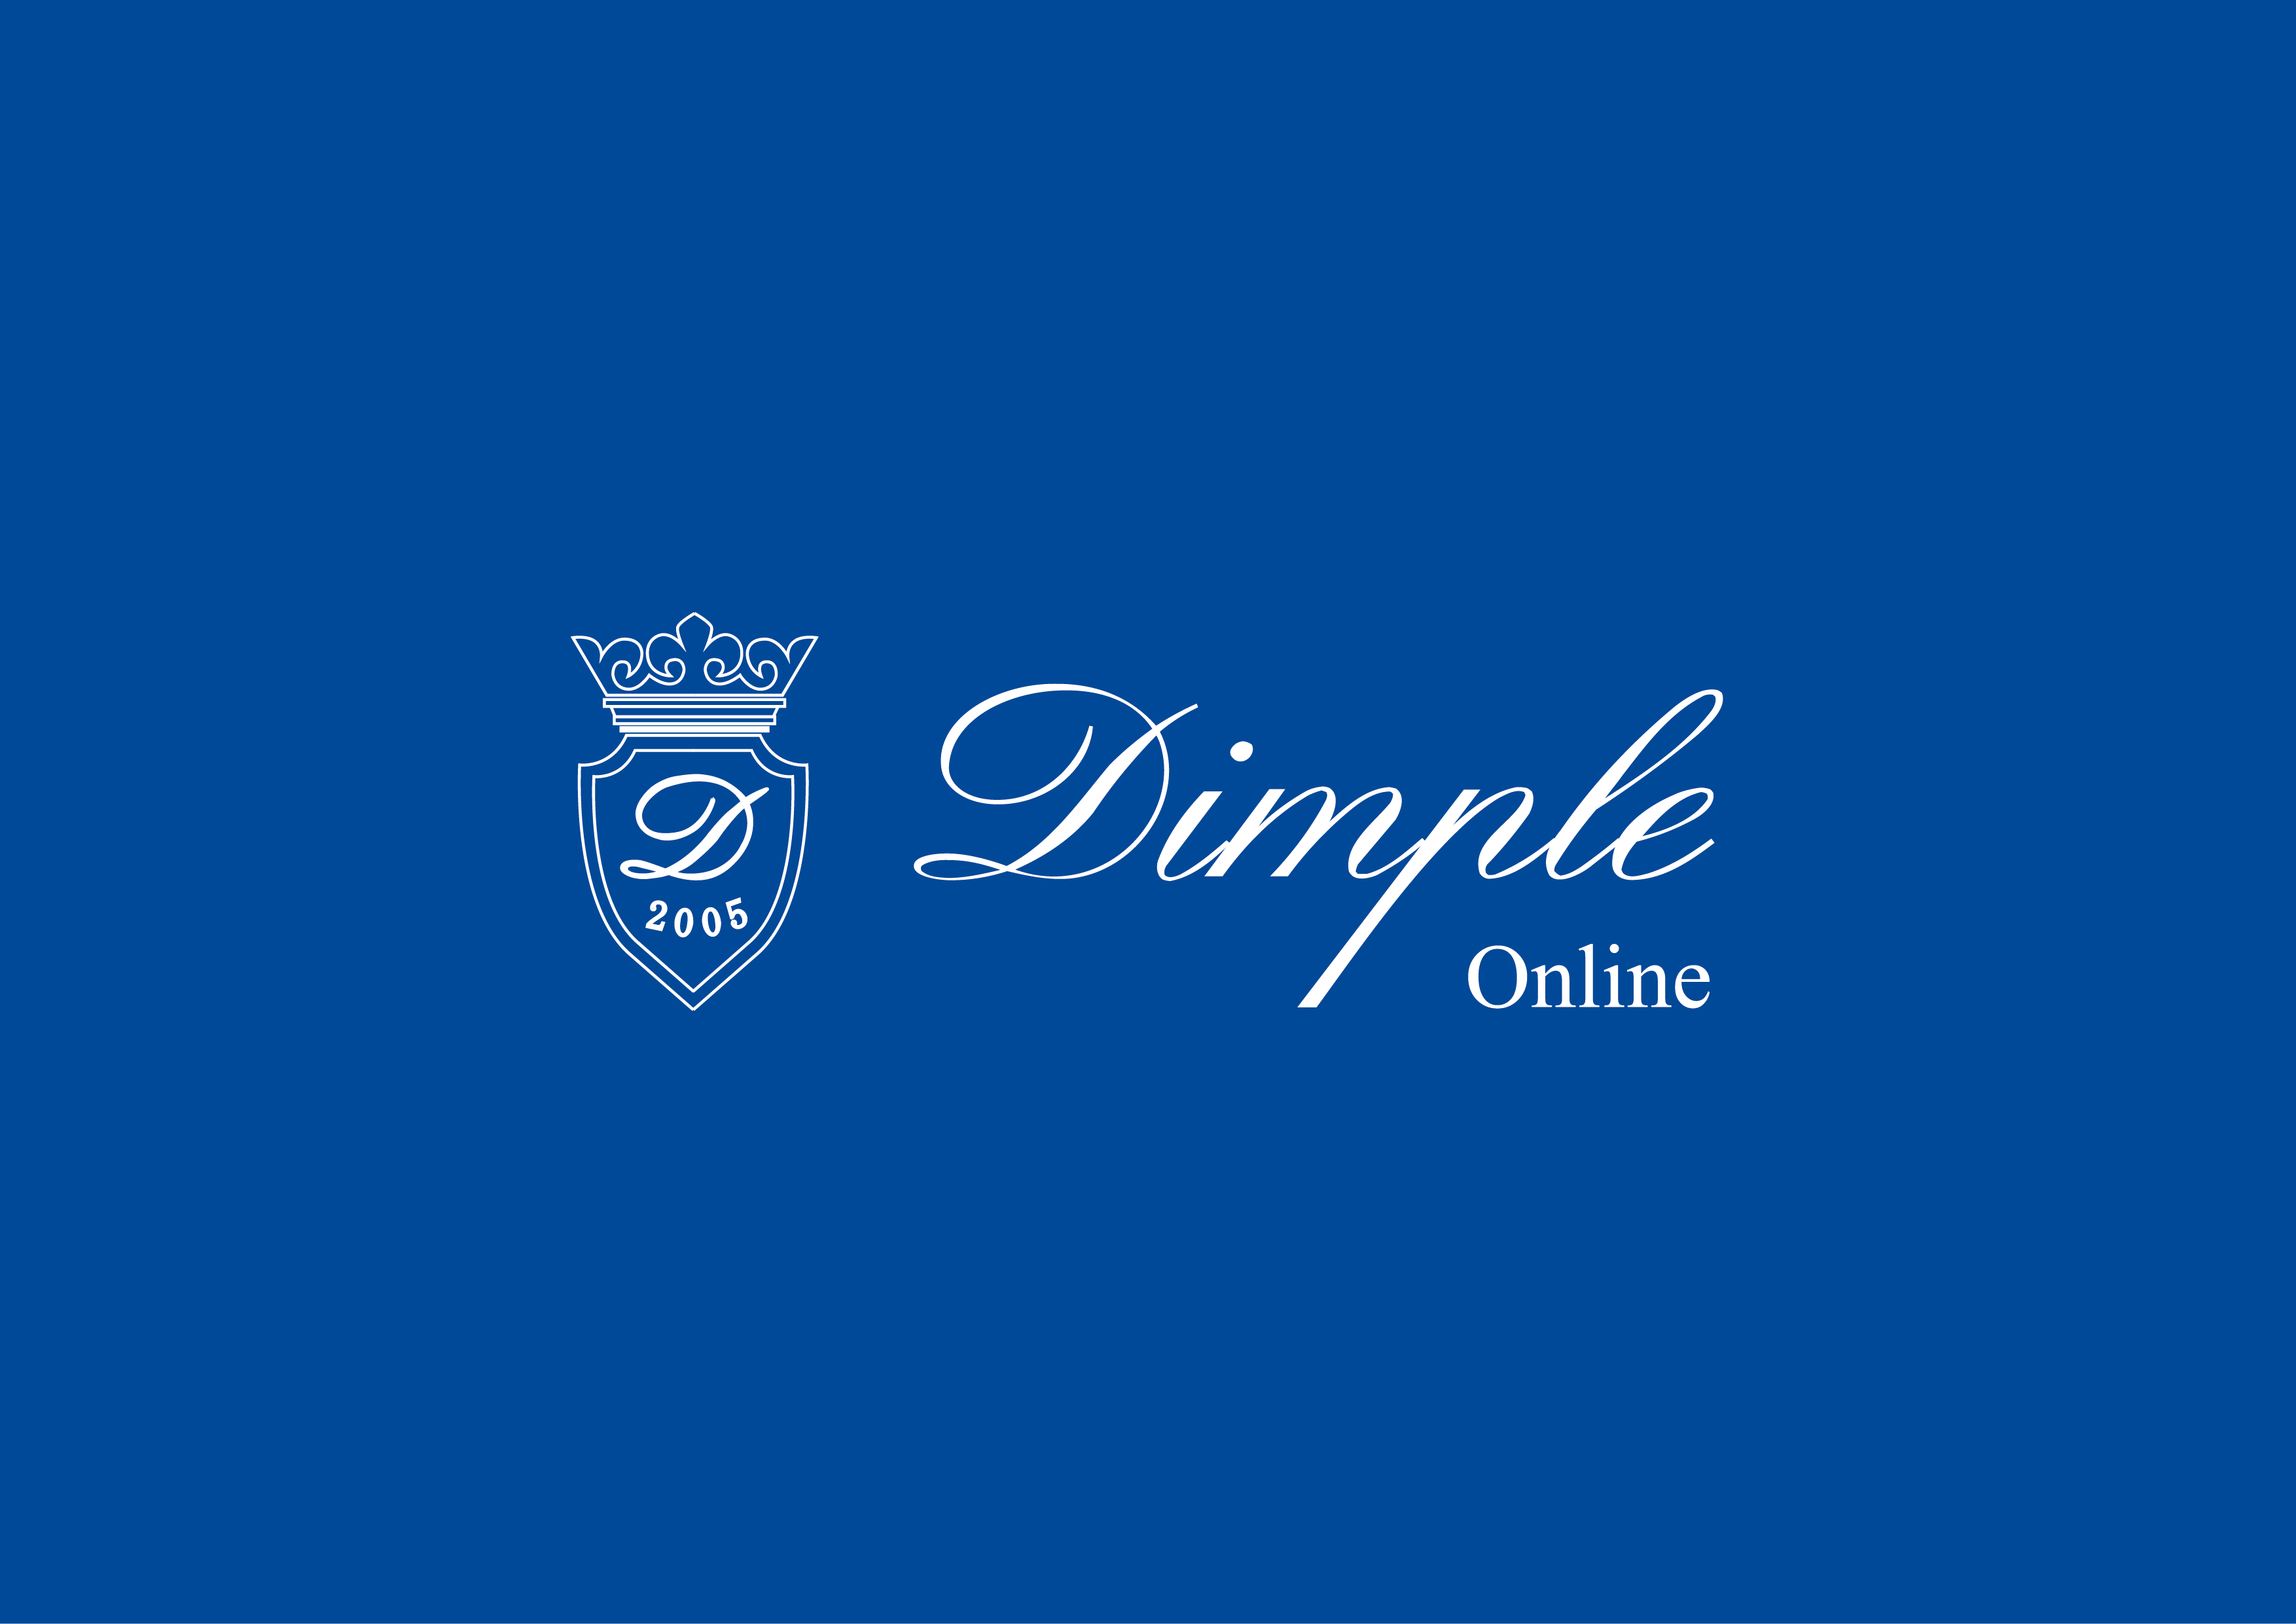 Dimple Inc OFFICIAL ONLINEがリニューアル!